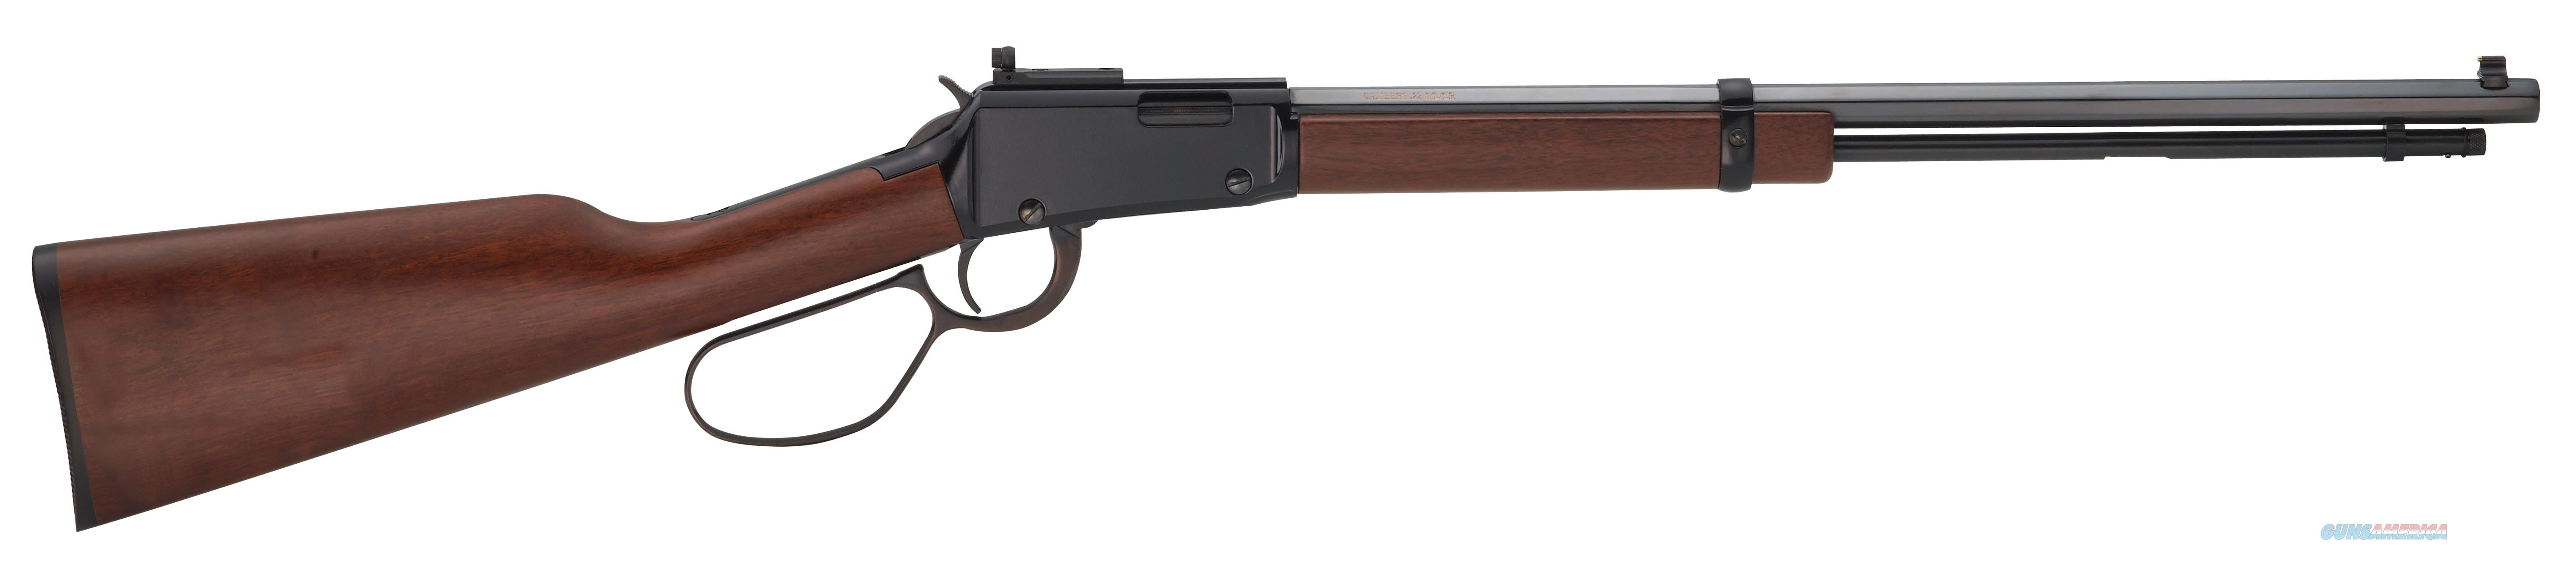 "Henry H001trp Small Game Rifle 22 S/L/Lr Lever 22 Long Rifle 20"" 16+1 Walnut Stk Blued H001TRP  Guns > Rifles > H Misc Rifles"